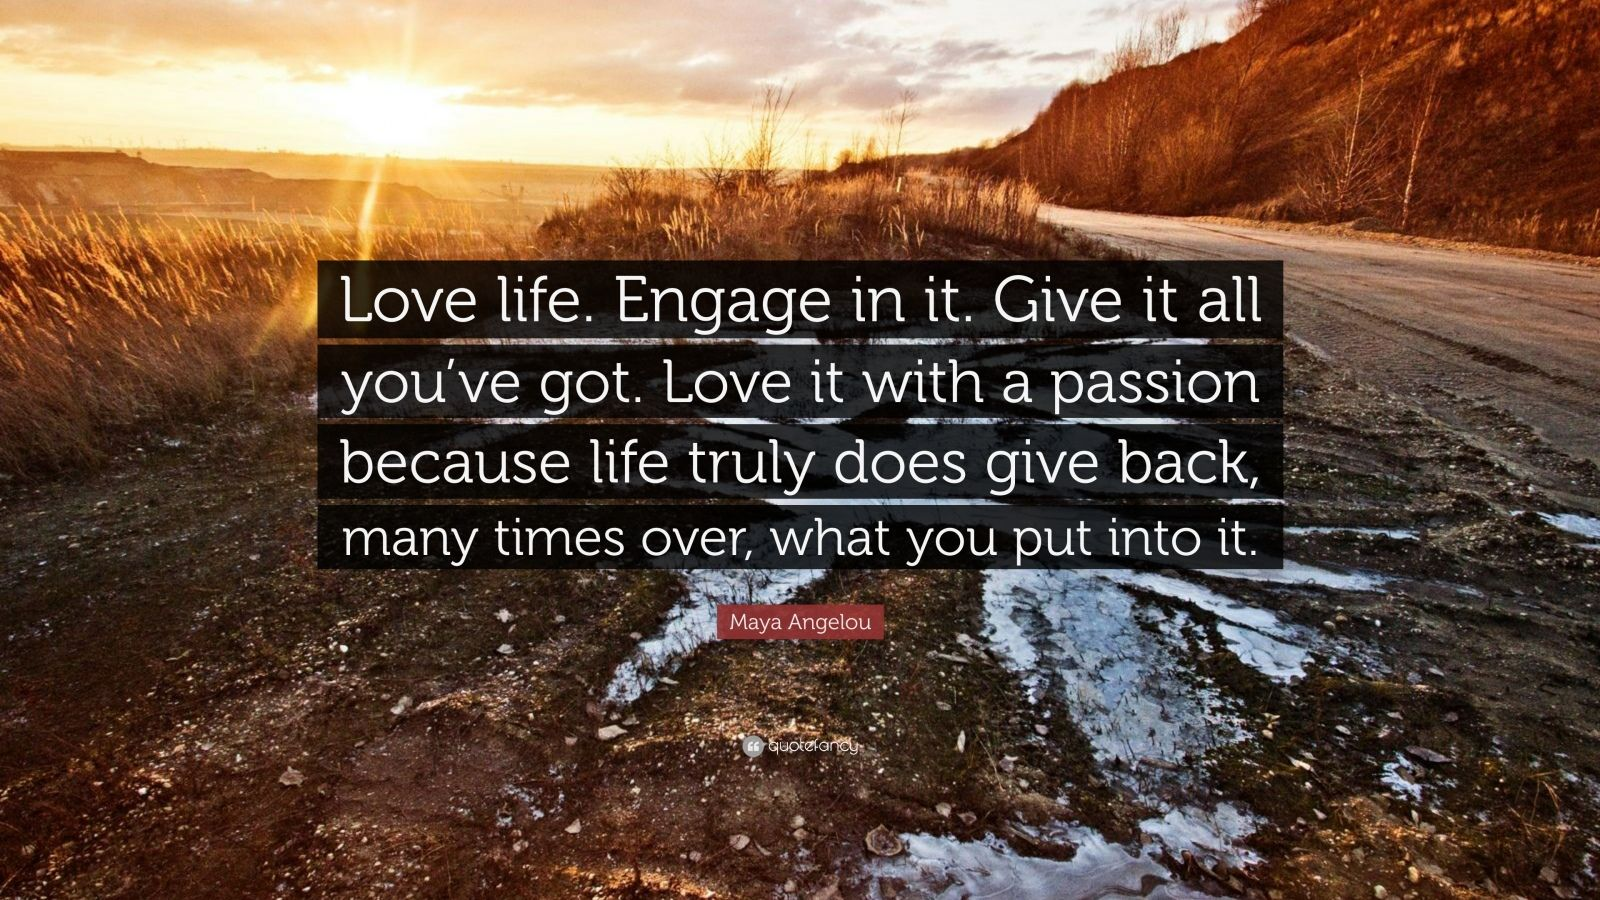 """Maya Angelou Quote: """"Love life. Engage in it. Give it all you've got. Love it with a passion because life truly does give back, many times over, what you put into it."""""""